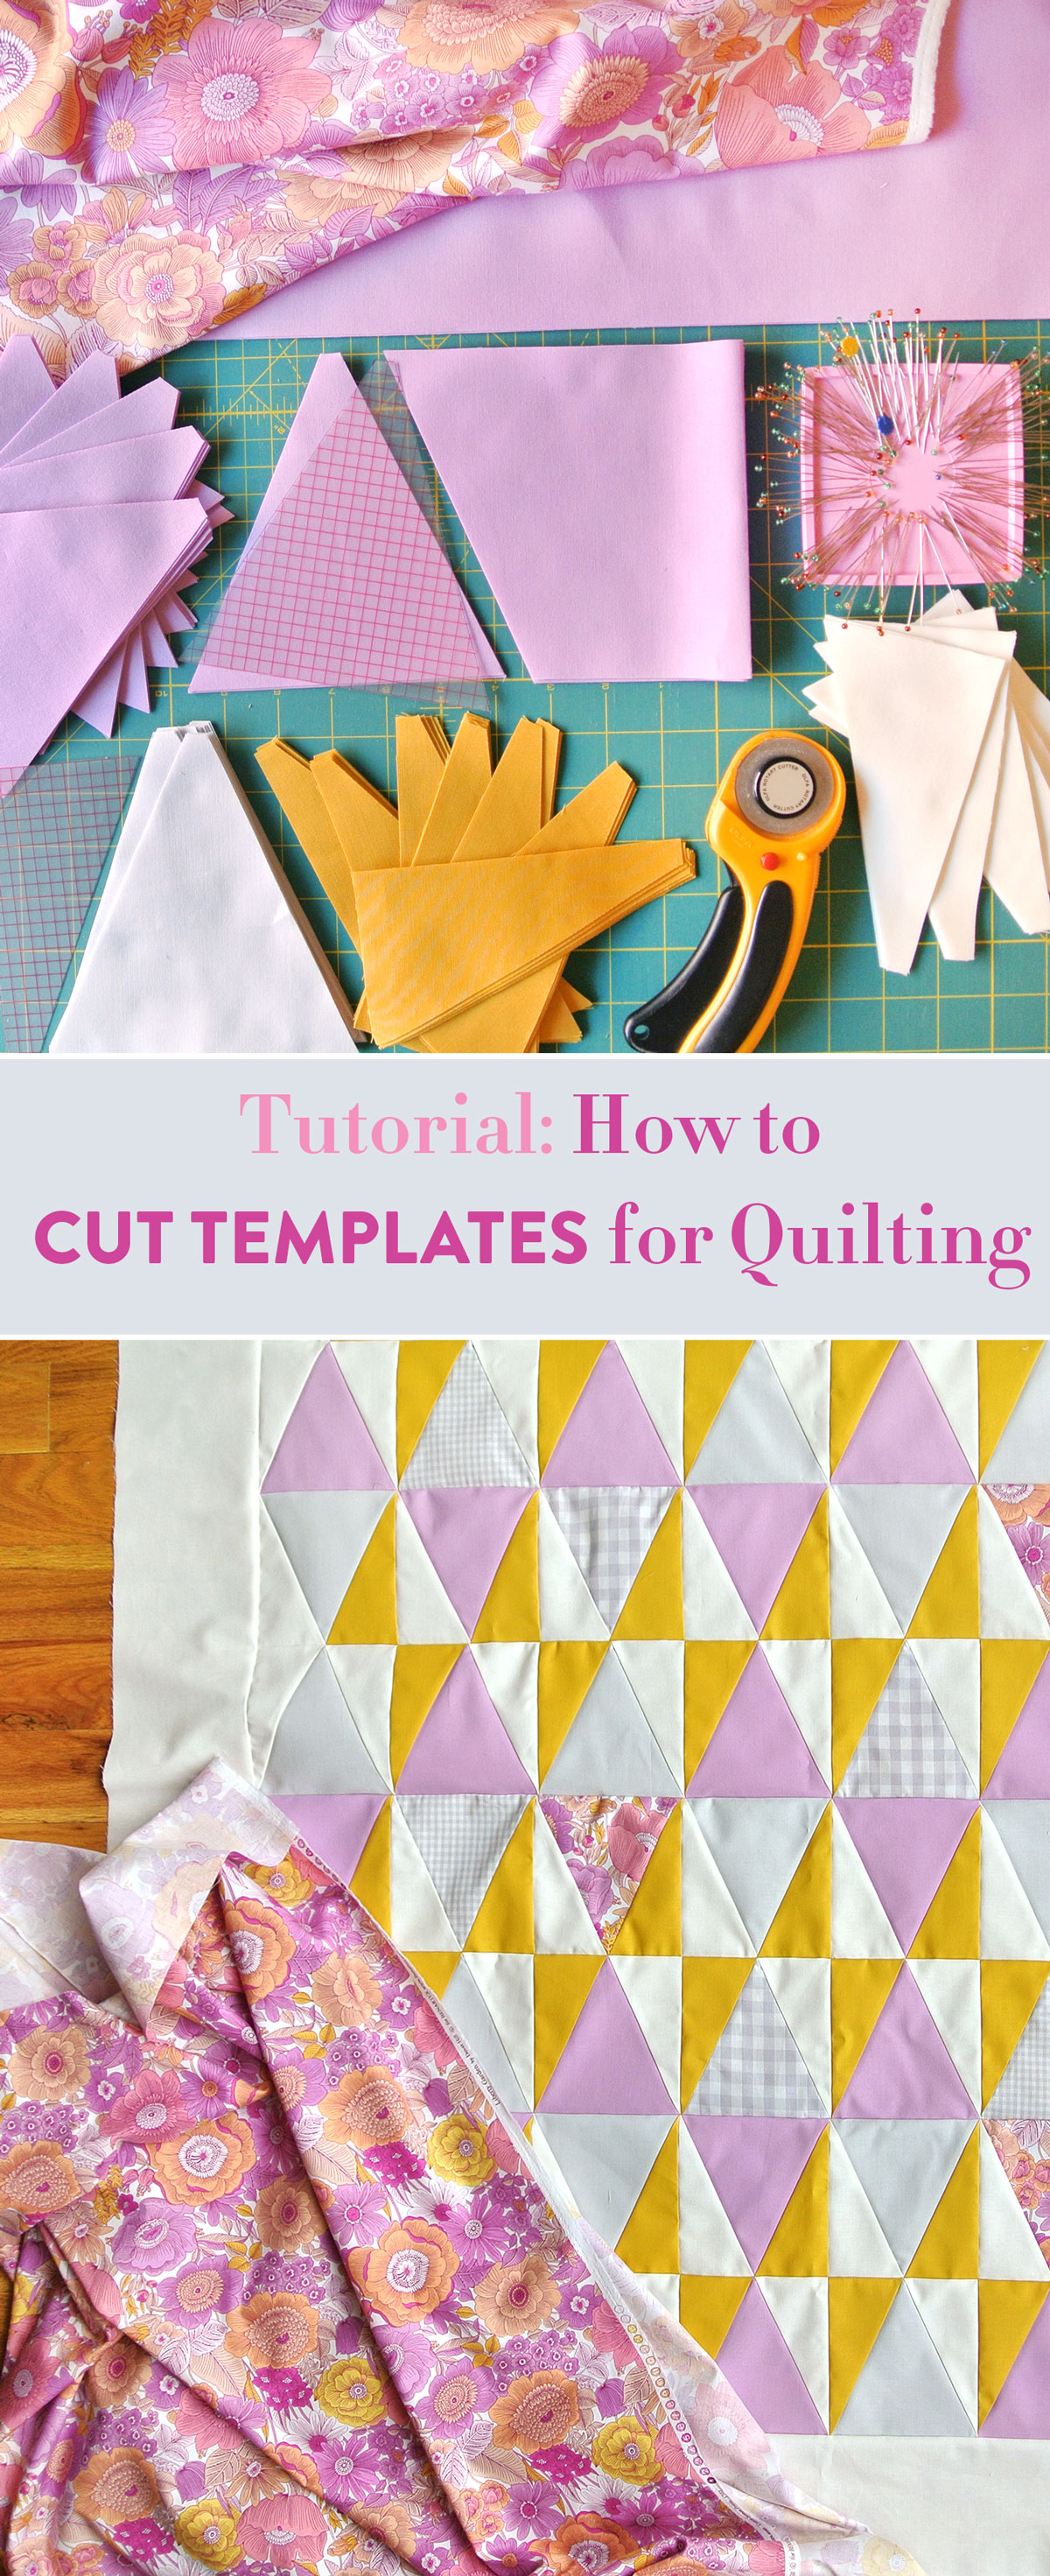 How to Cut Templates for Quilting: The Perfect Guide for Beginner Sewers | Suzy Quilts https://suzyquilts.com/how-to-cut-templates